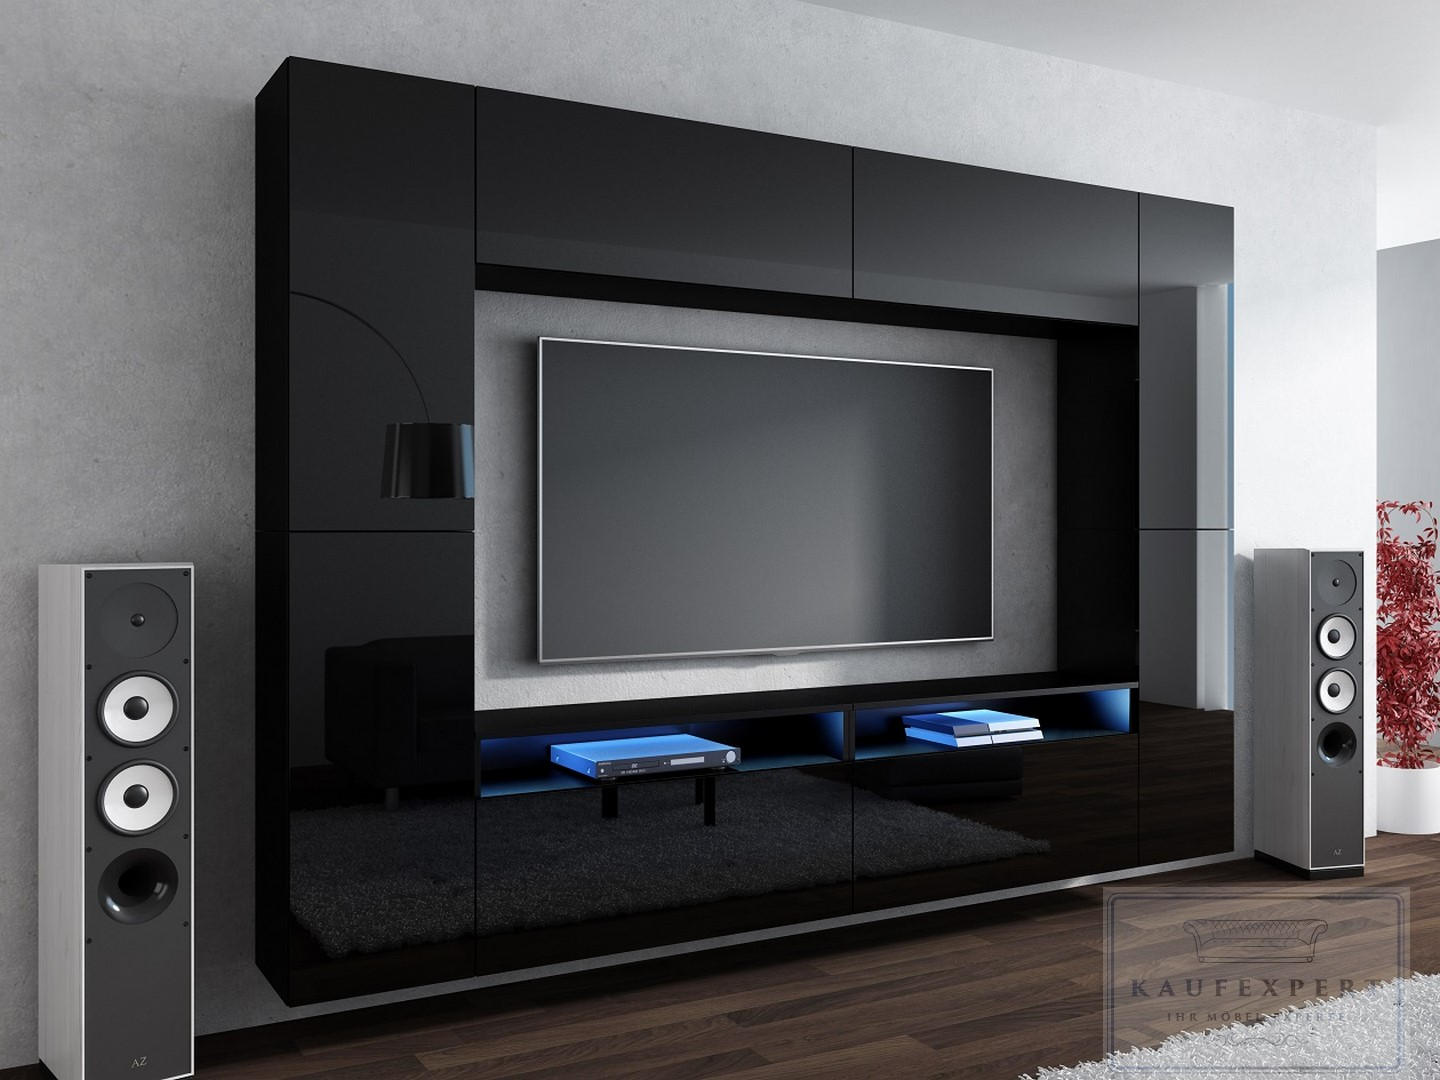 kaufexpert wohnwand cinema schwarz hochglanz mediawand medienwand design modern led. Black Bedroom Furniture Sets. Home Design Ideas